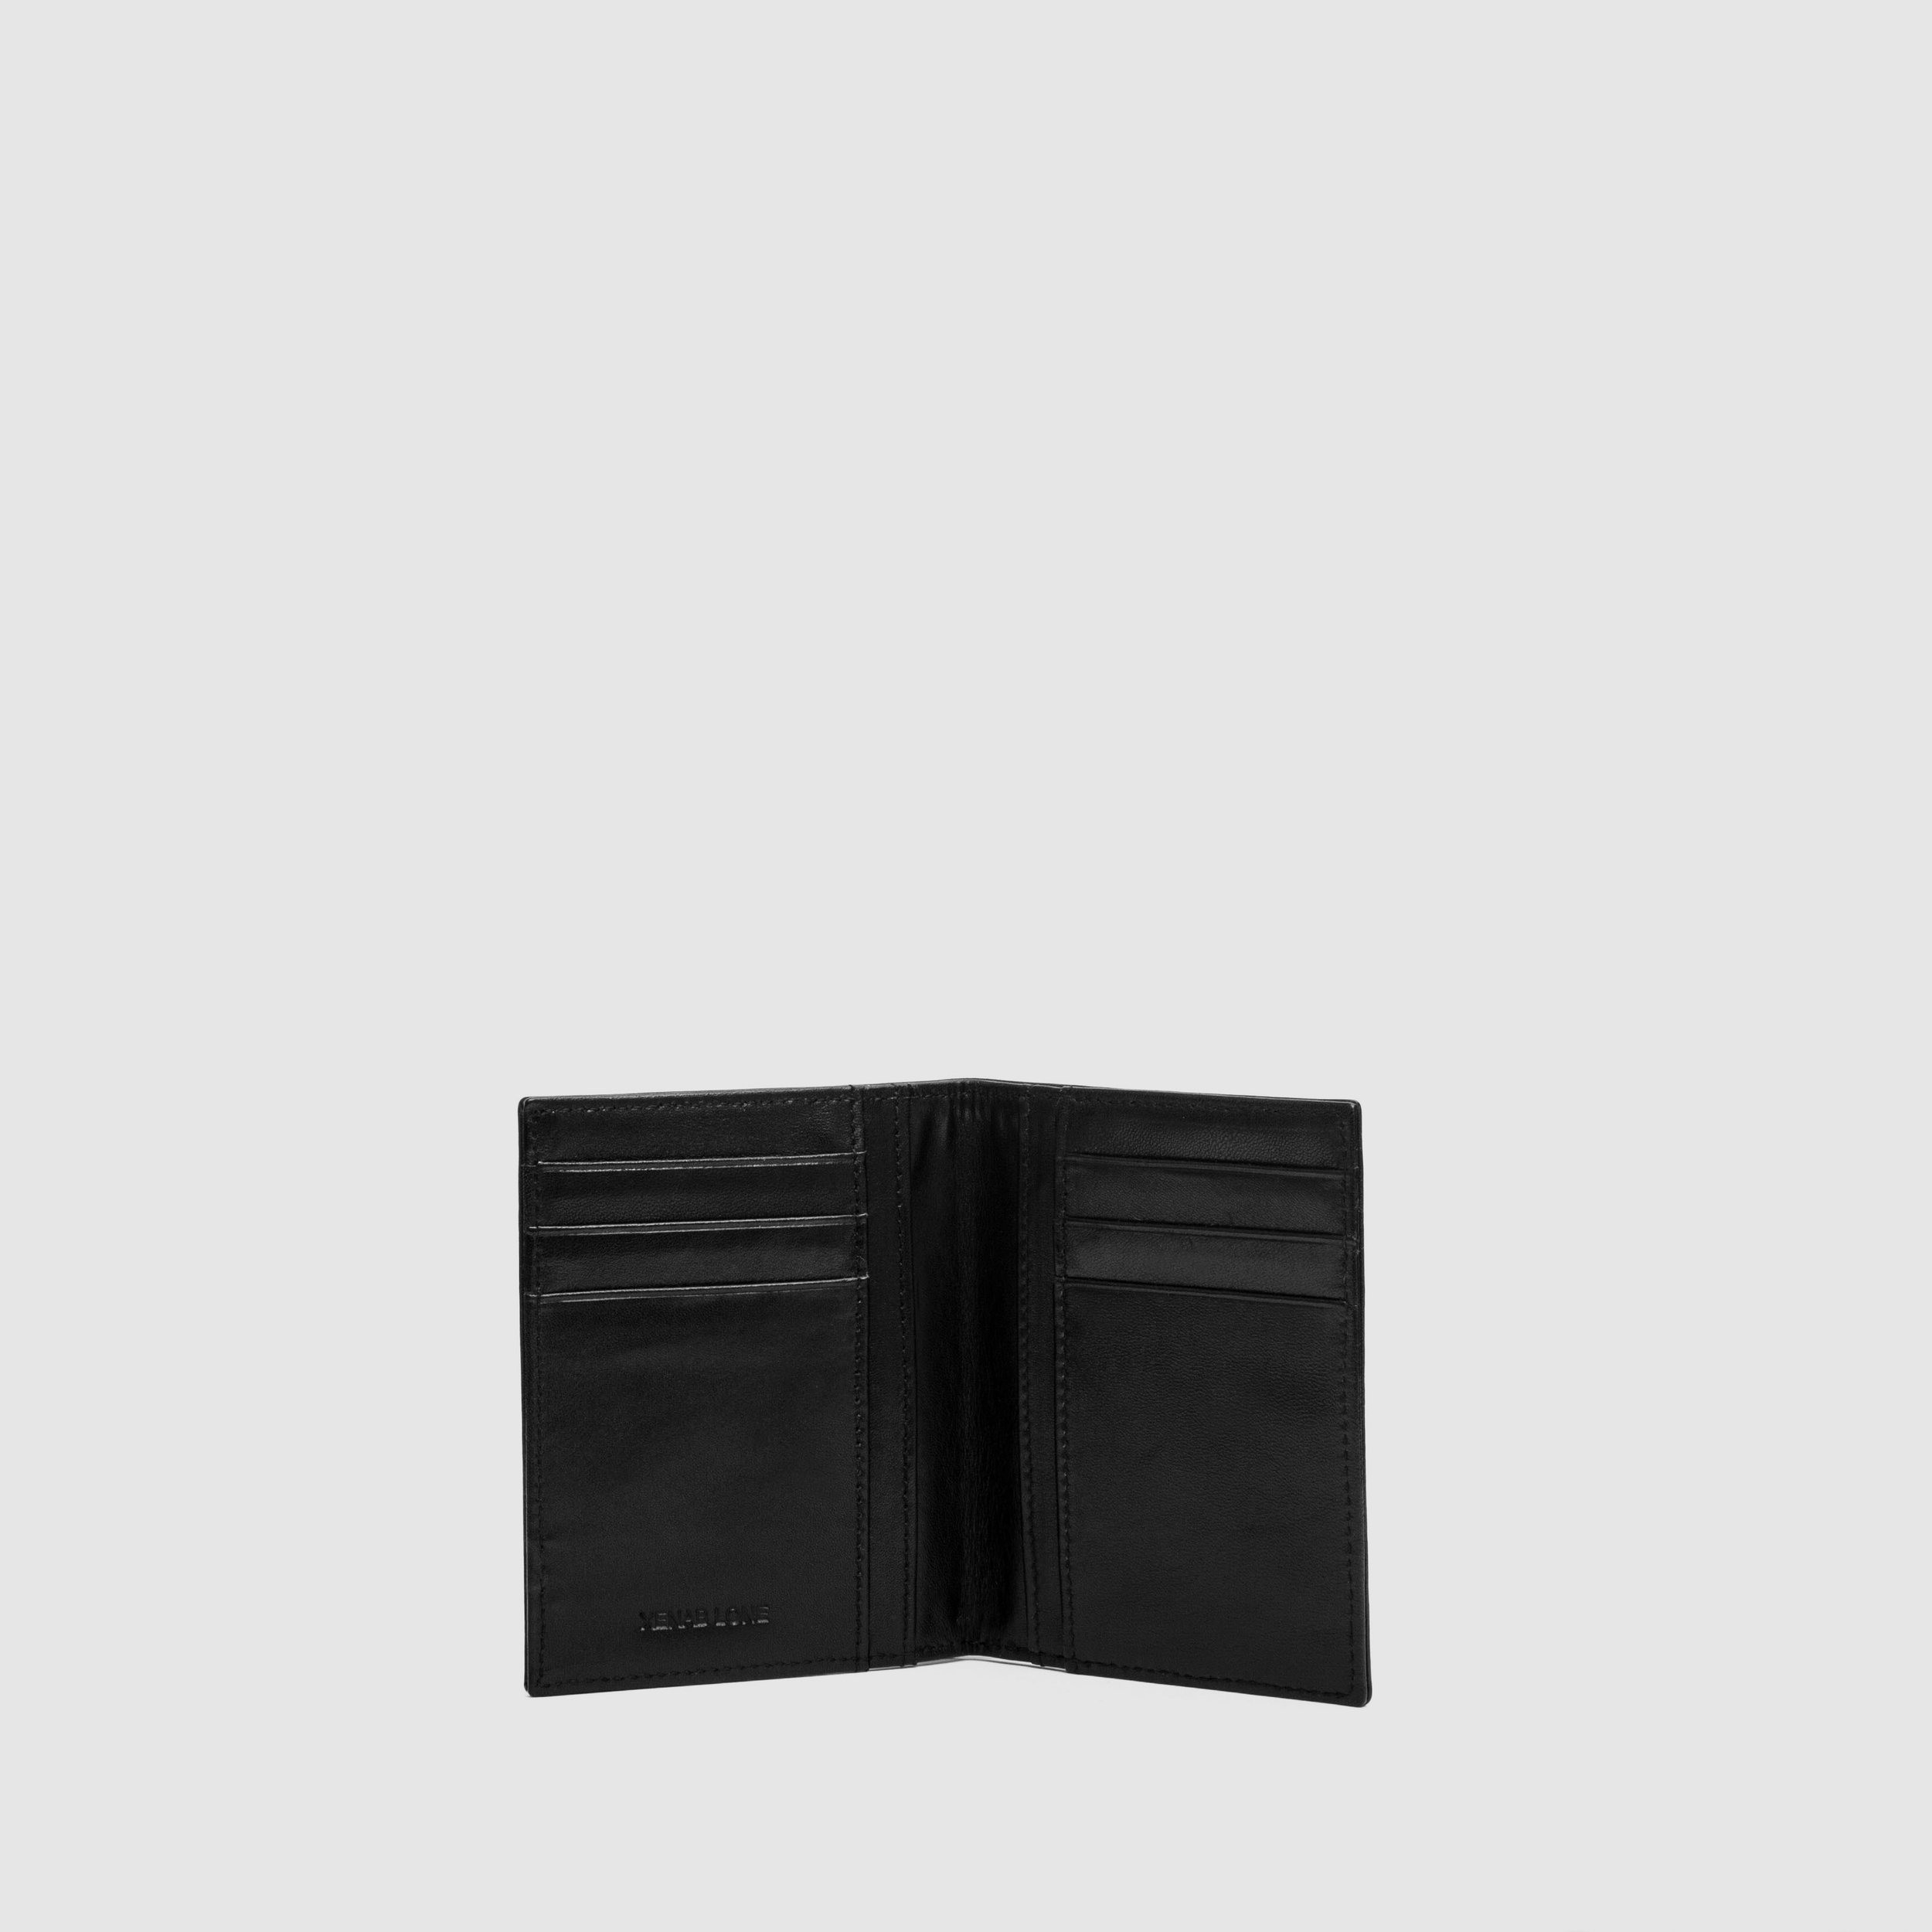 Wallets&Pouches_0002s_0000s_0002_Layer 30.jpg